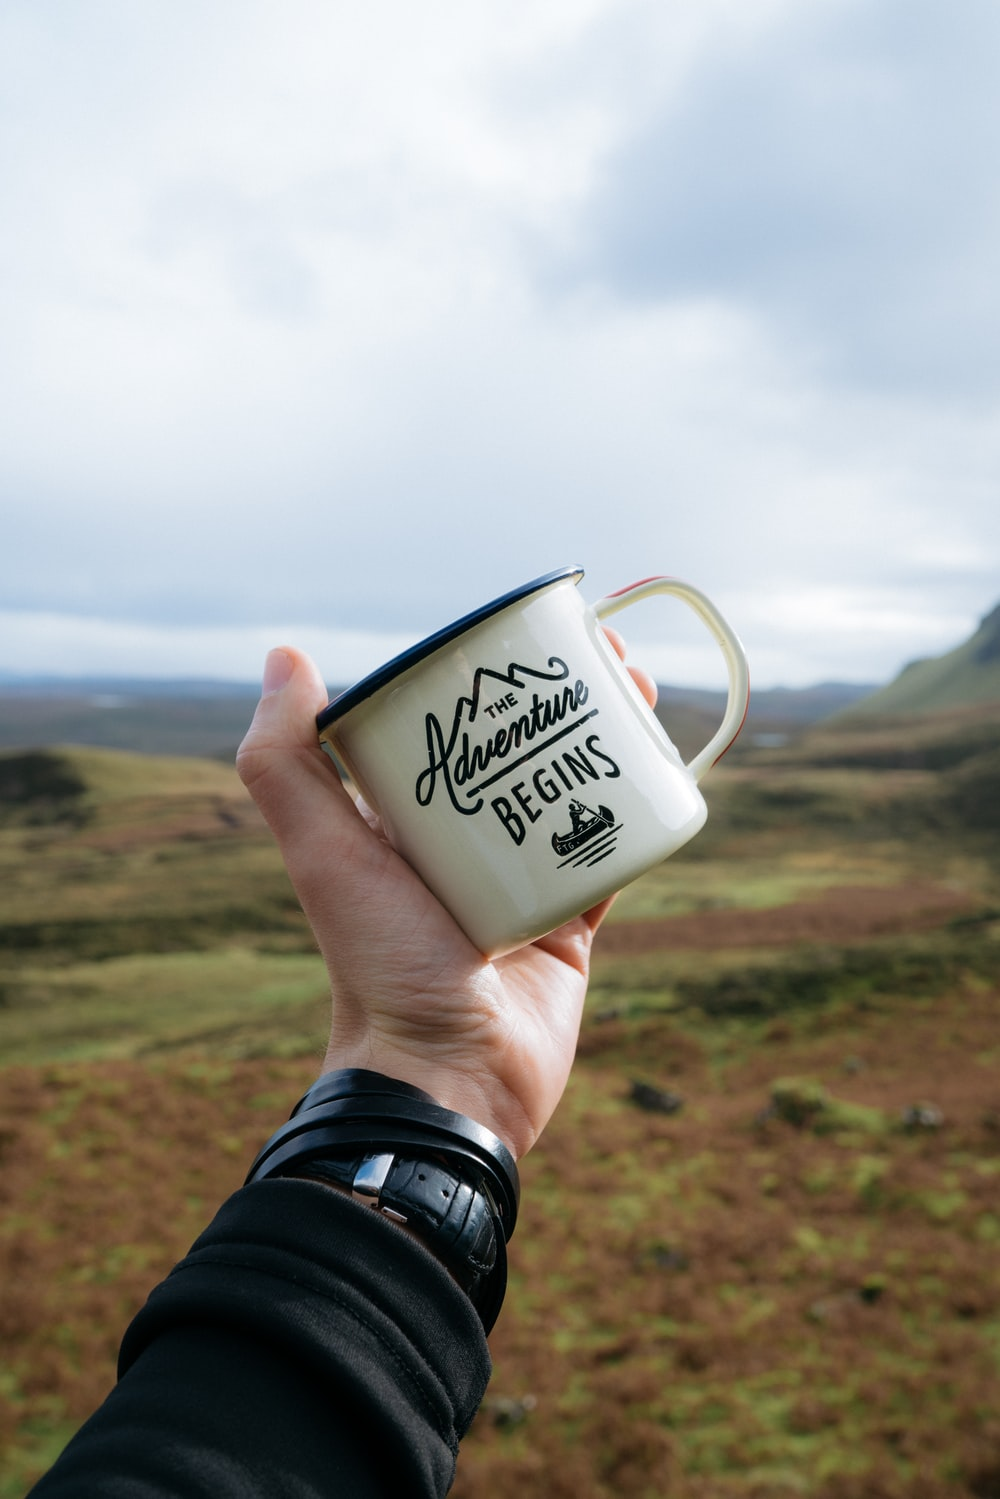 person holding beige and black The Adventure Begins-printed mug during daytime